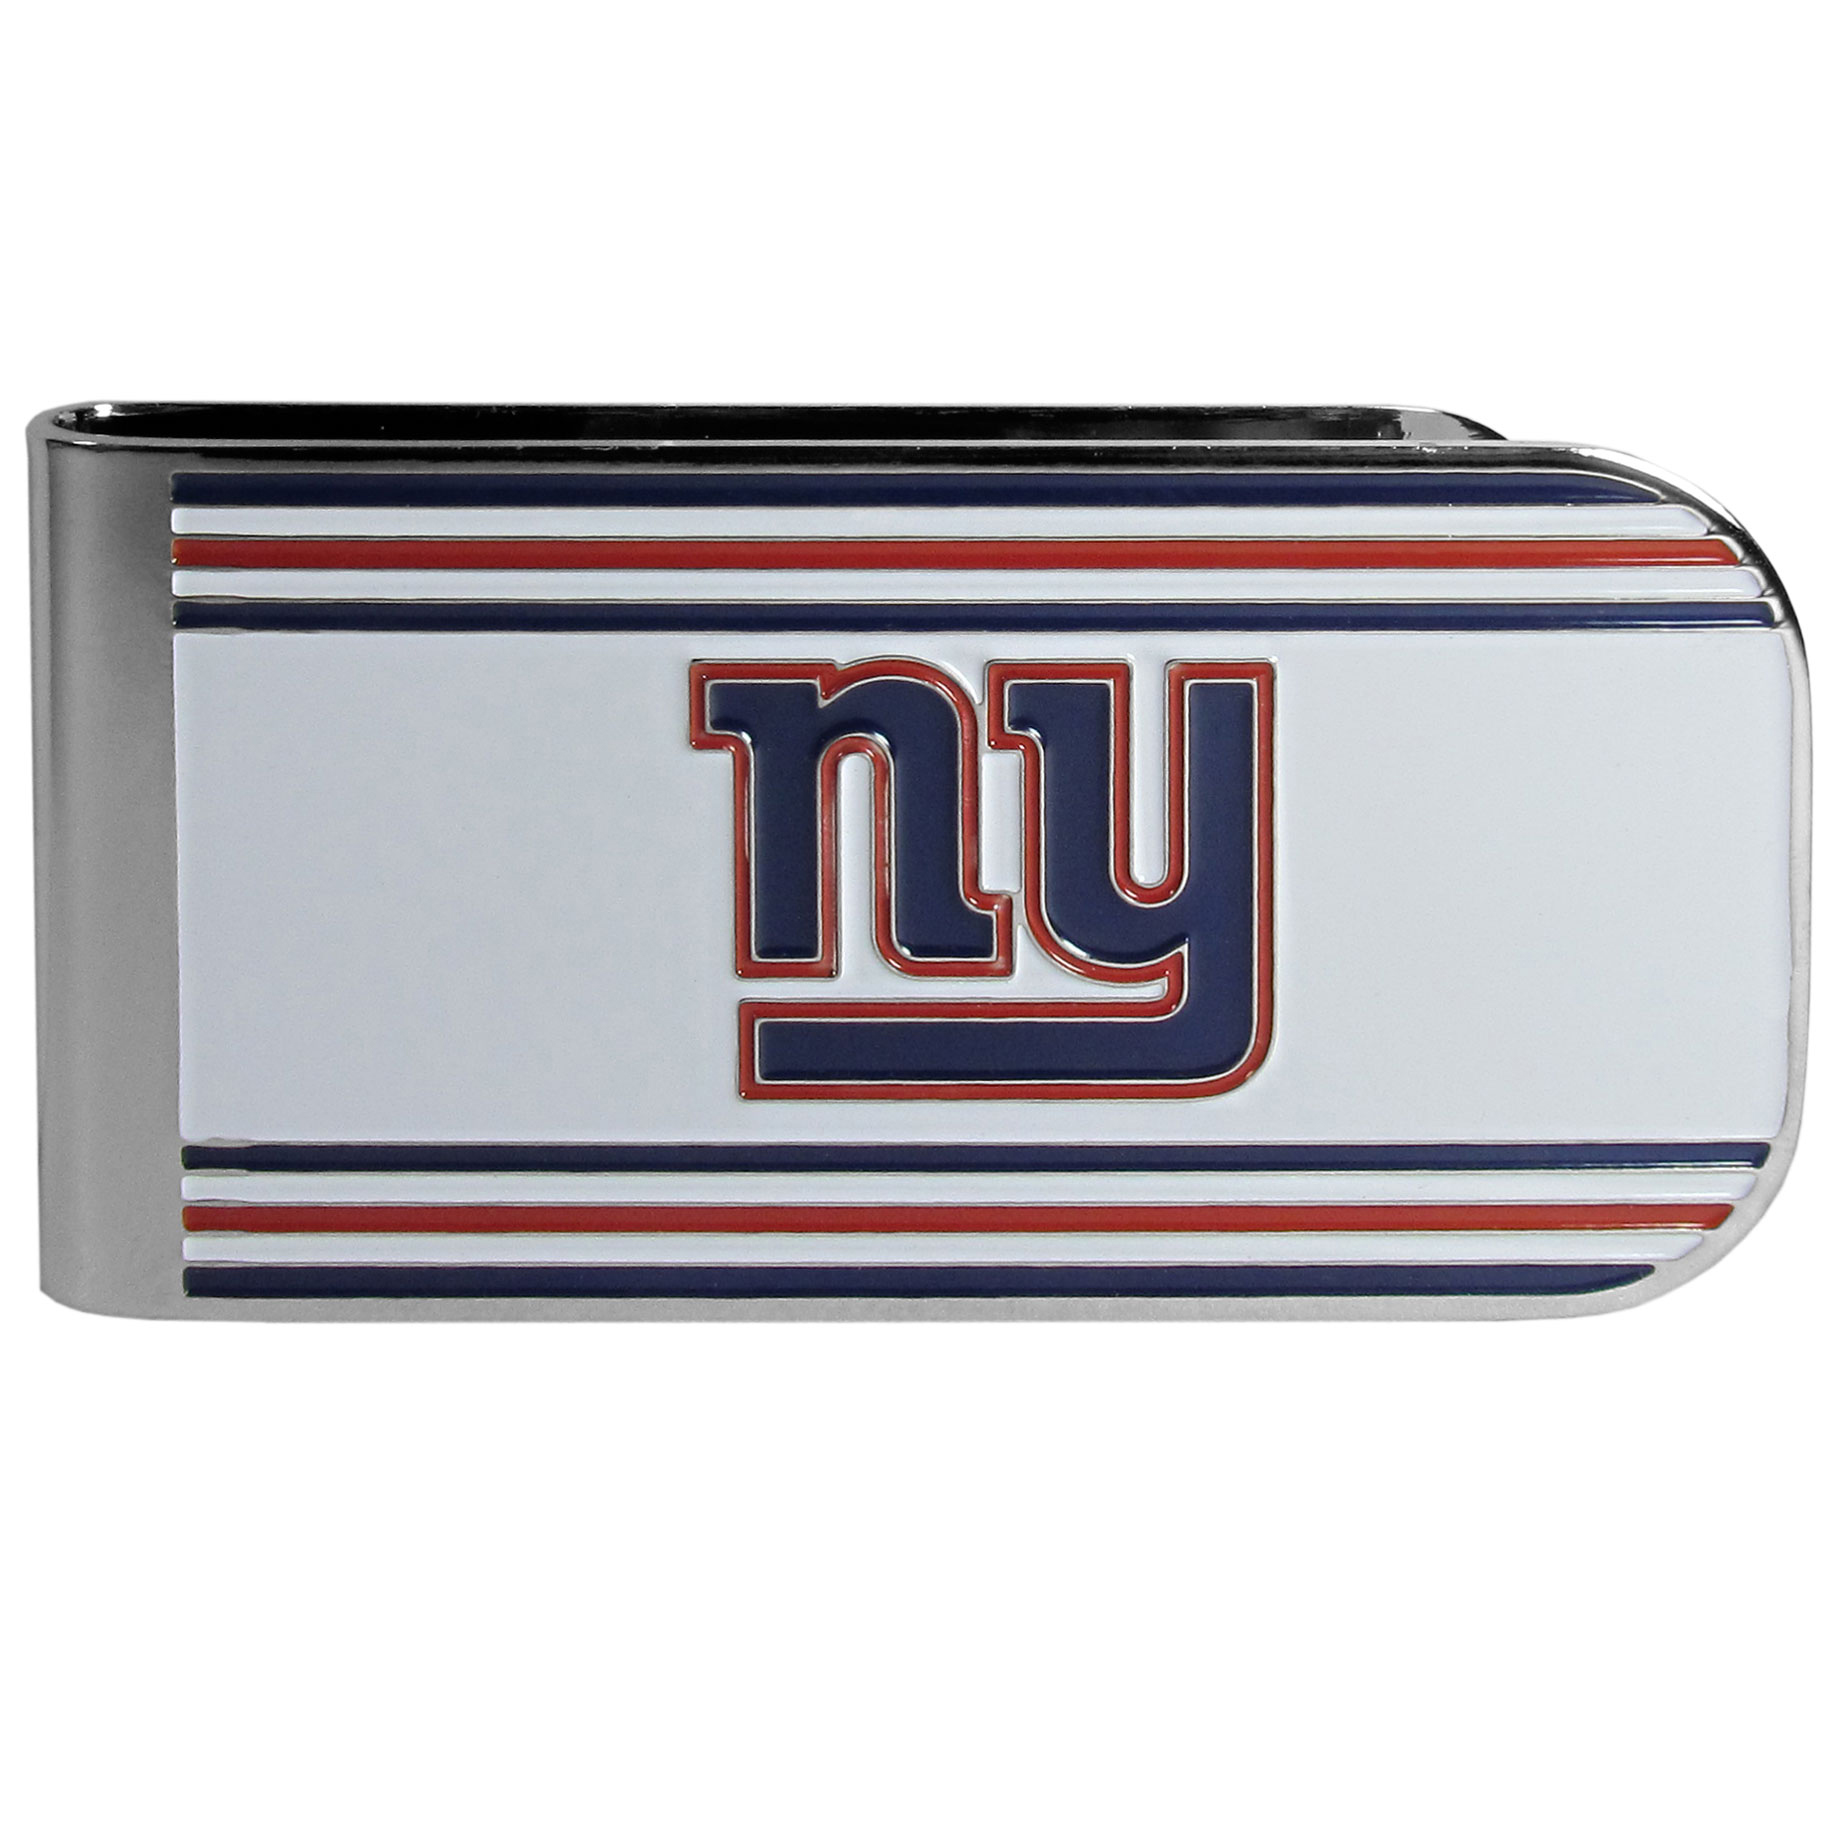 New York Giants MVP Money Clip - Our MVP money clip is made of high quality steel with a chrome overlay and enameled team colors and logo. The exceptional craftmanship on this piece makes it a men's fashion accessory that any fan would be proud to own. The cast detail in the New York Giants logo is perfectly detailed. The clip features an inner spring to hold your cash and cards securely in place.